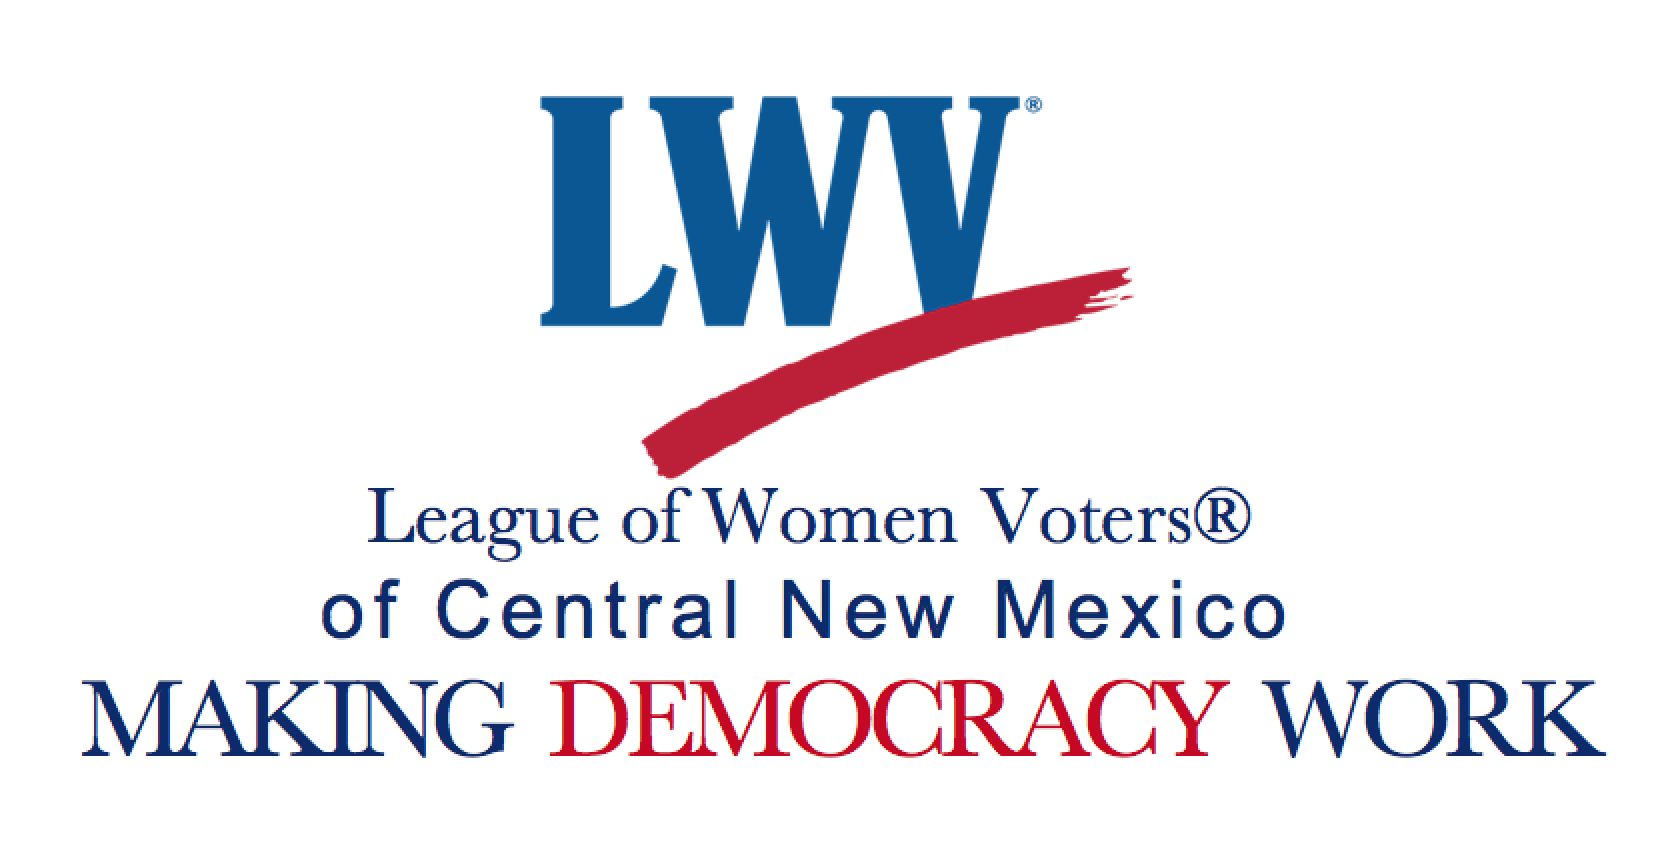 Unm Winter Intersession Courses 2020.Lwvcnm League Of Women Voters Of Central New Mexico